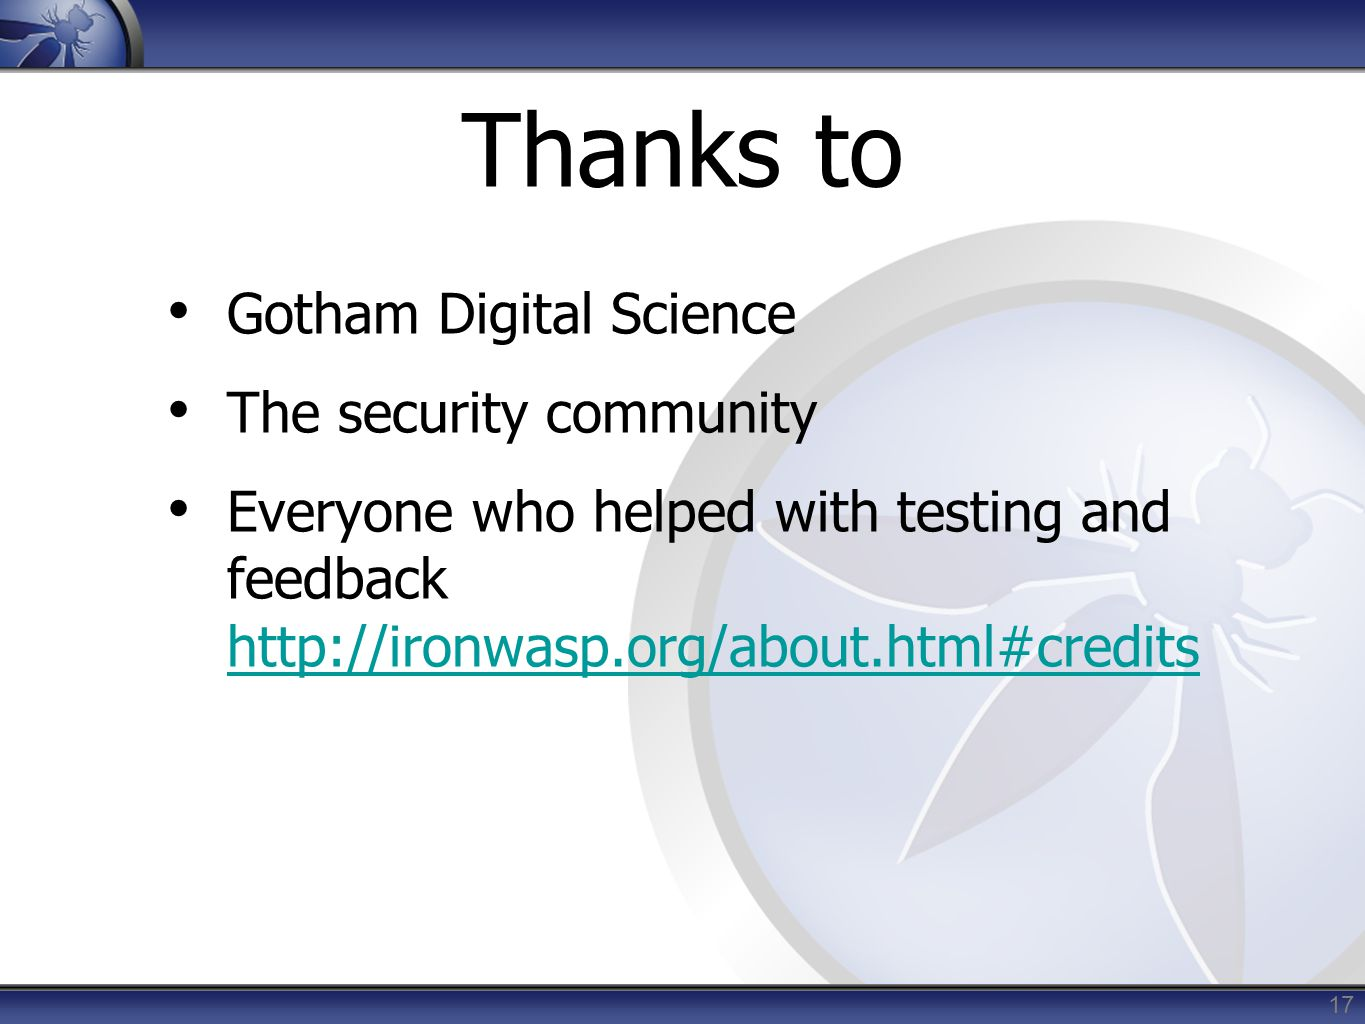 Thanks to Gotham Digital Science The security community Everyone who helped with testing and feedback http://ironwasp.org/about.html#credits http://ir